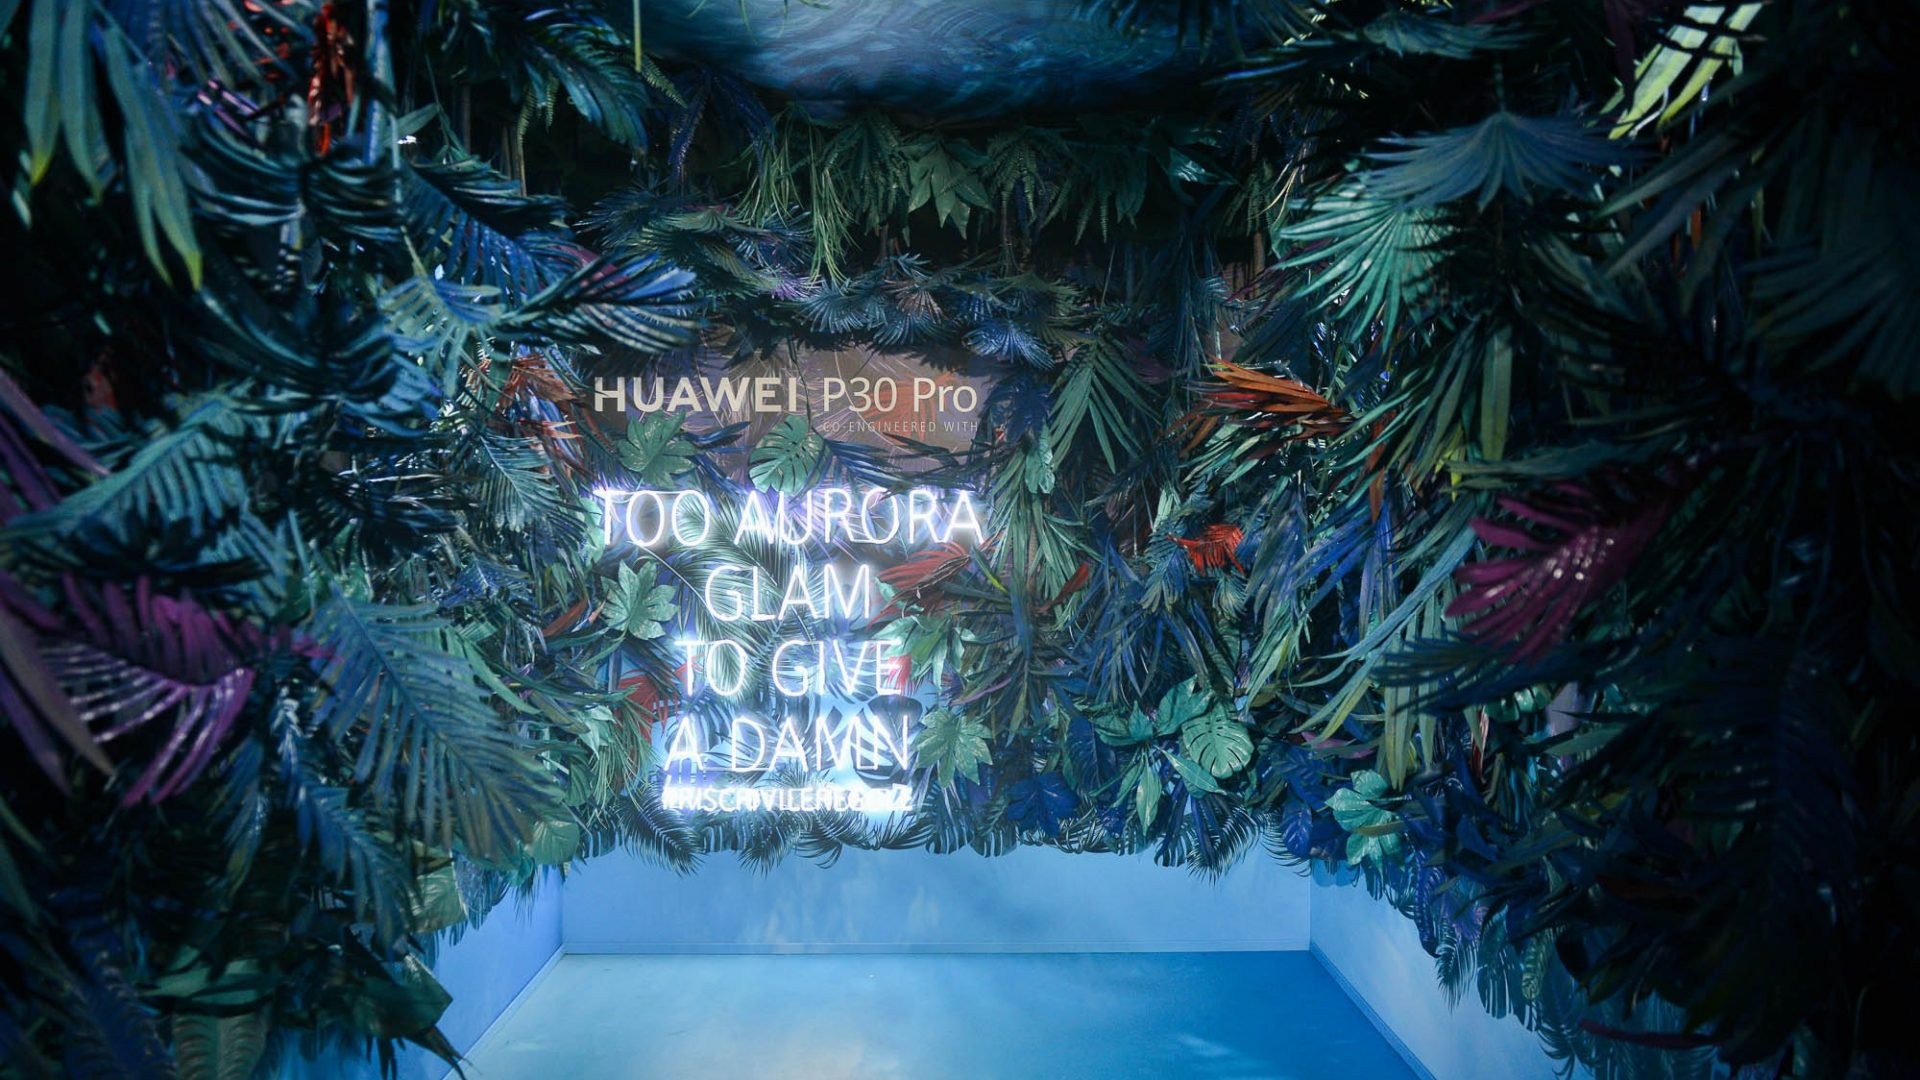 LFM Group per Huawei 2019 - Experience Box for playful/sensory effects for IG photos  - by Artes Group International